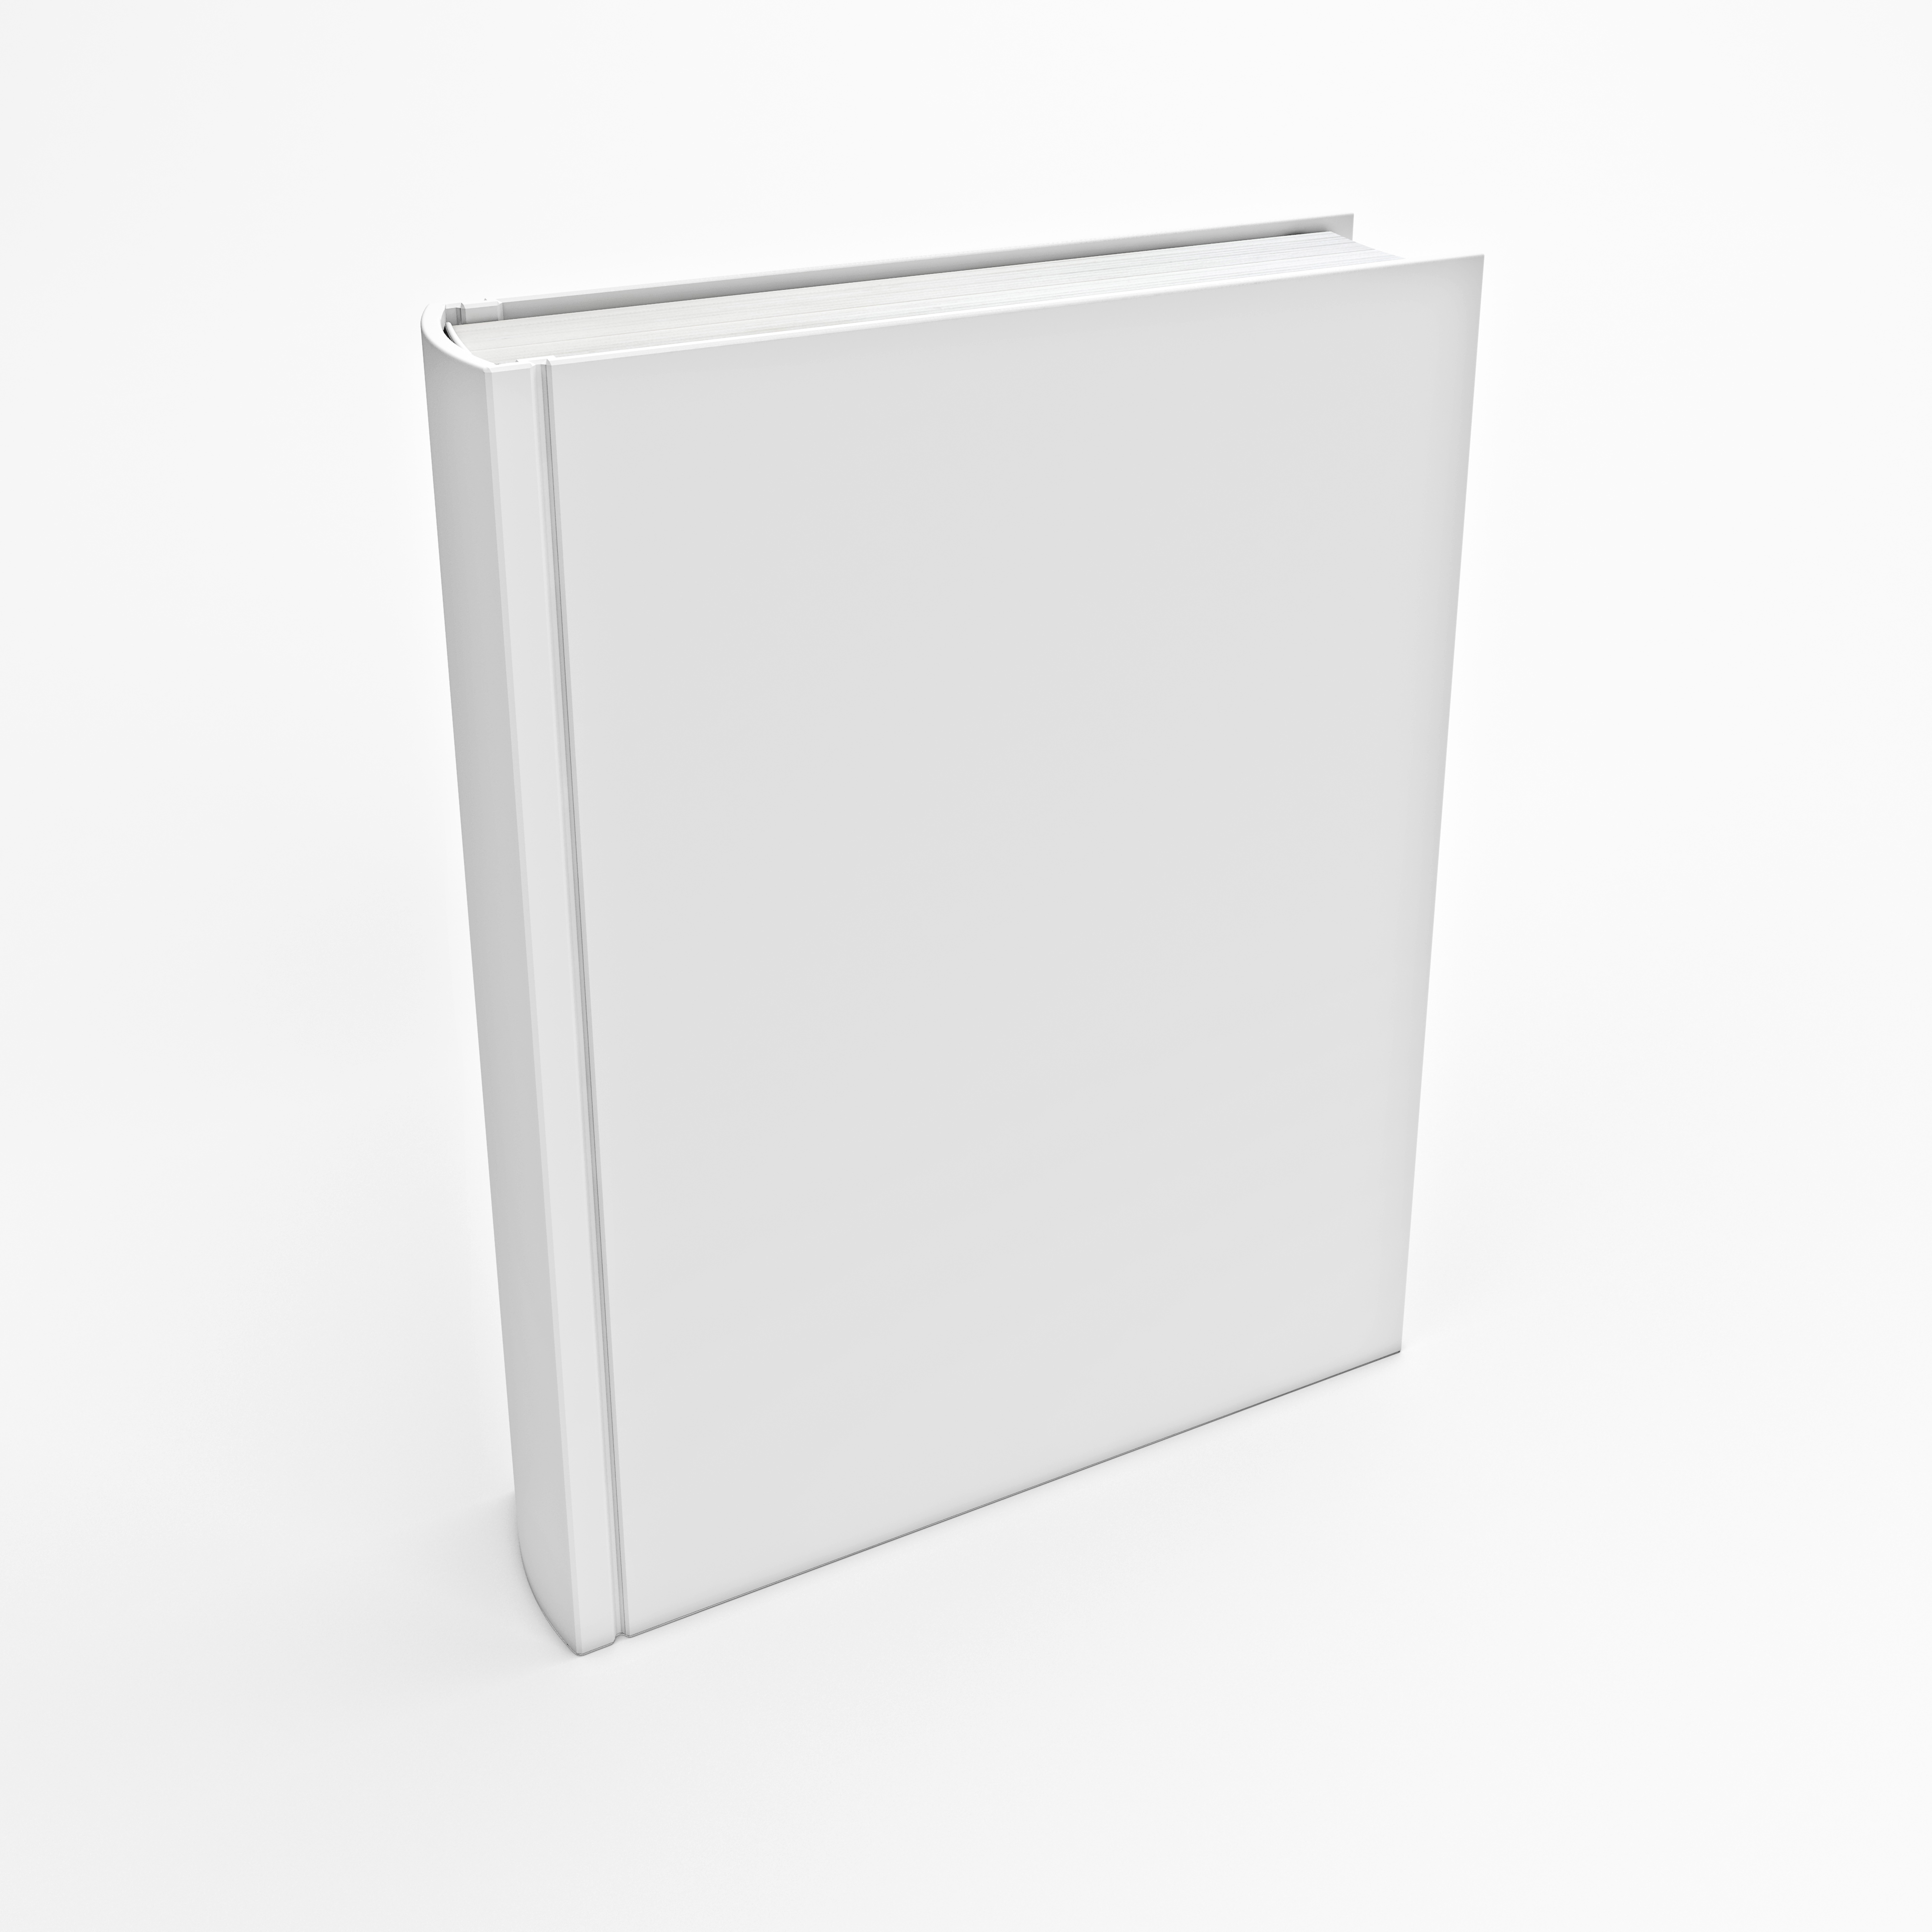 Book Cover Png (110+ images in Collection) Page 1.